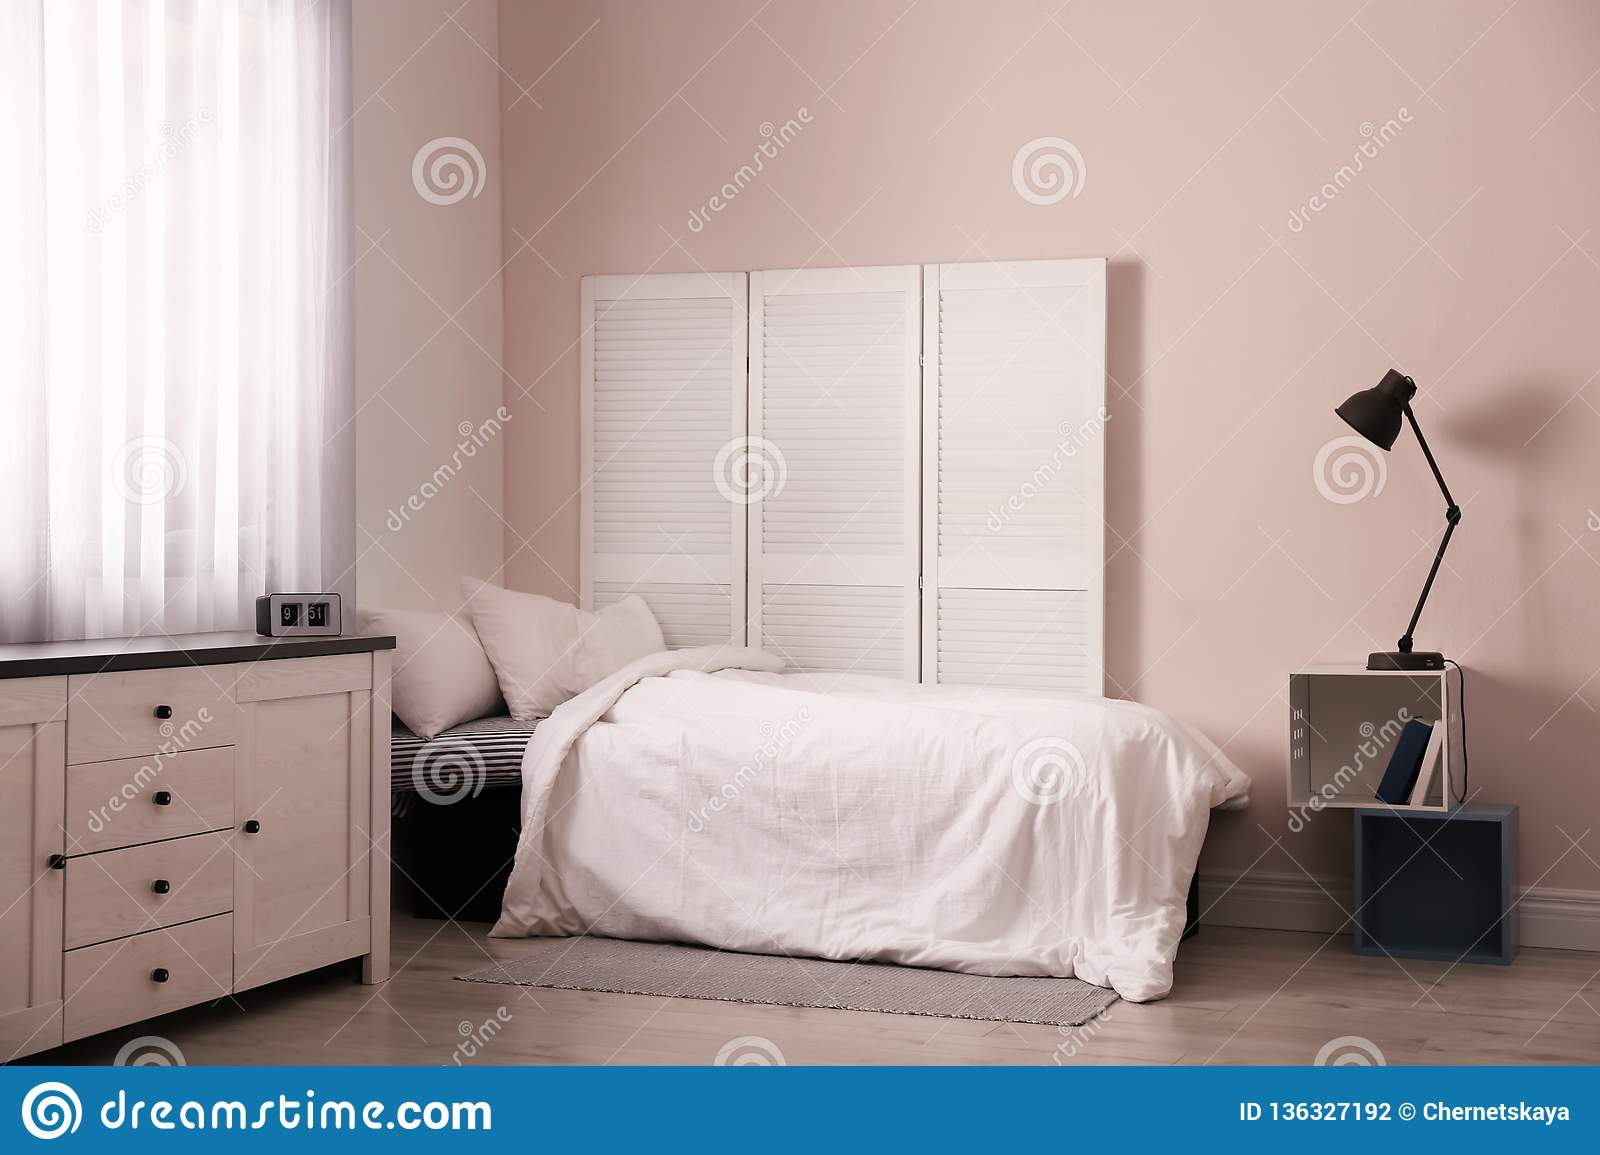 Modern Teen Room Interior With Bed Stock Photo - Image of ...